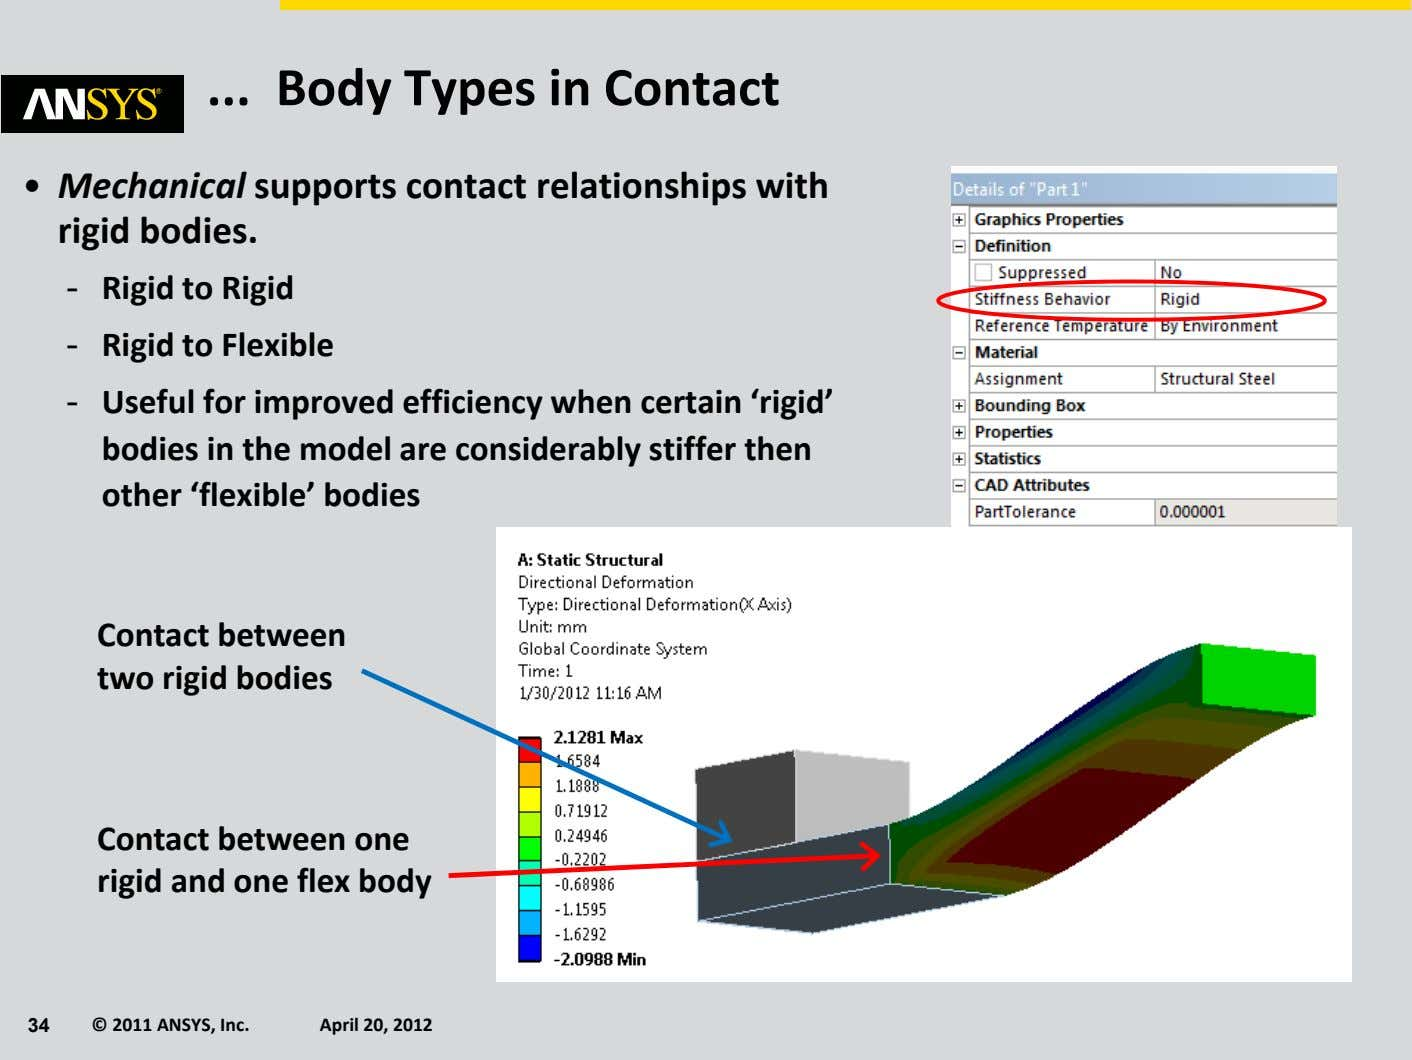 Body Types in Contact • Mechanical supports contact relationships with rigid bodies. - Rigid to